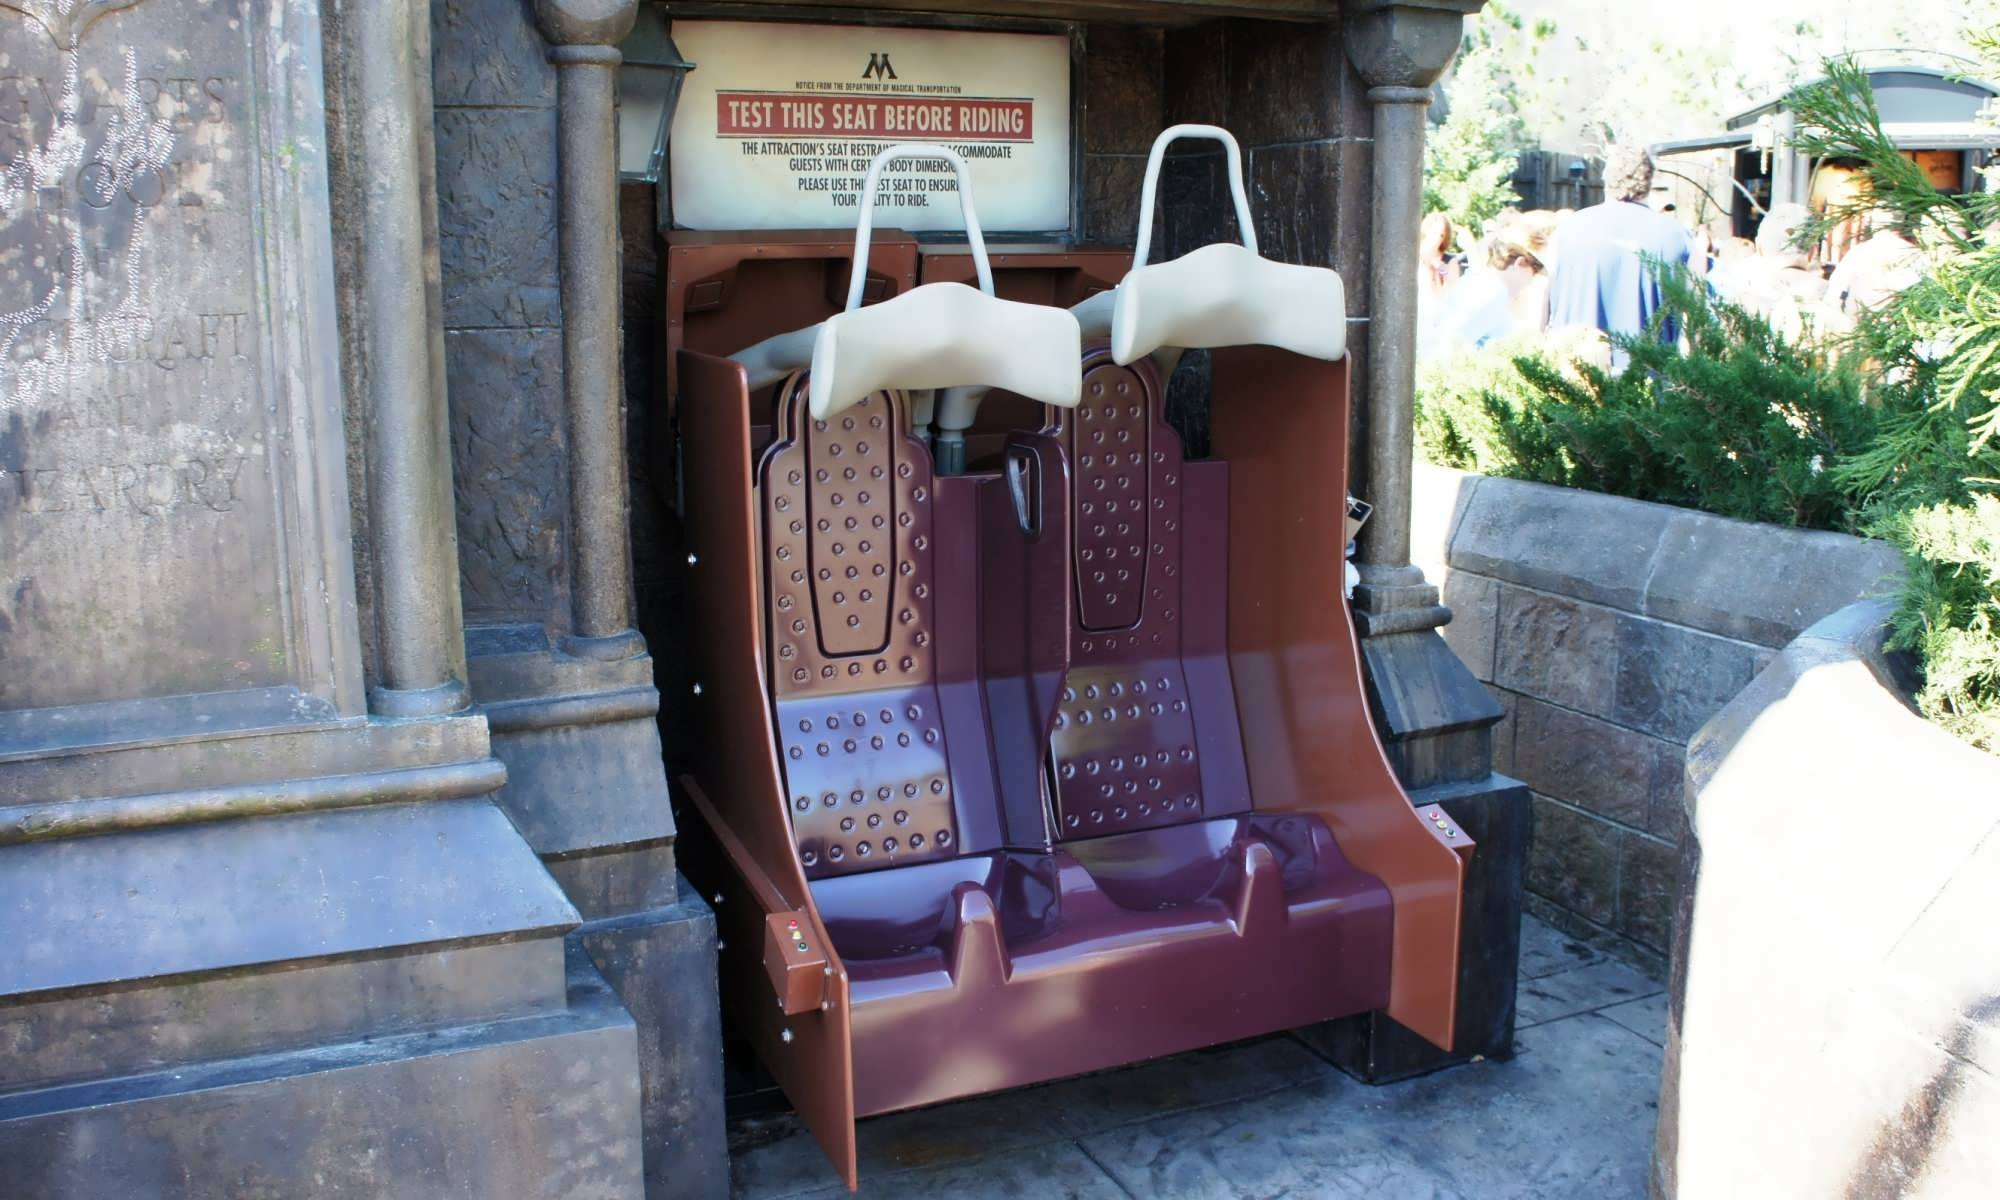 Forbidden Journey test seats located at the gates to Hogwarts Castle.